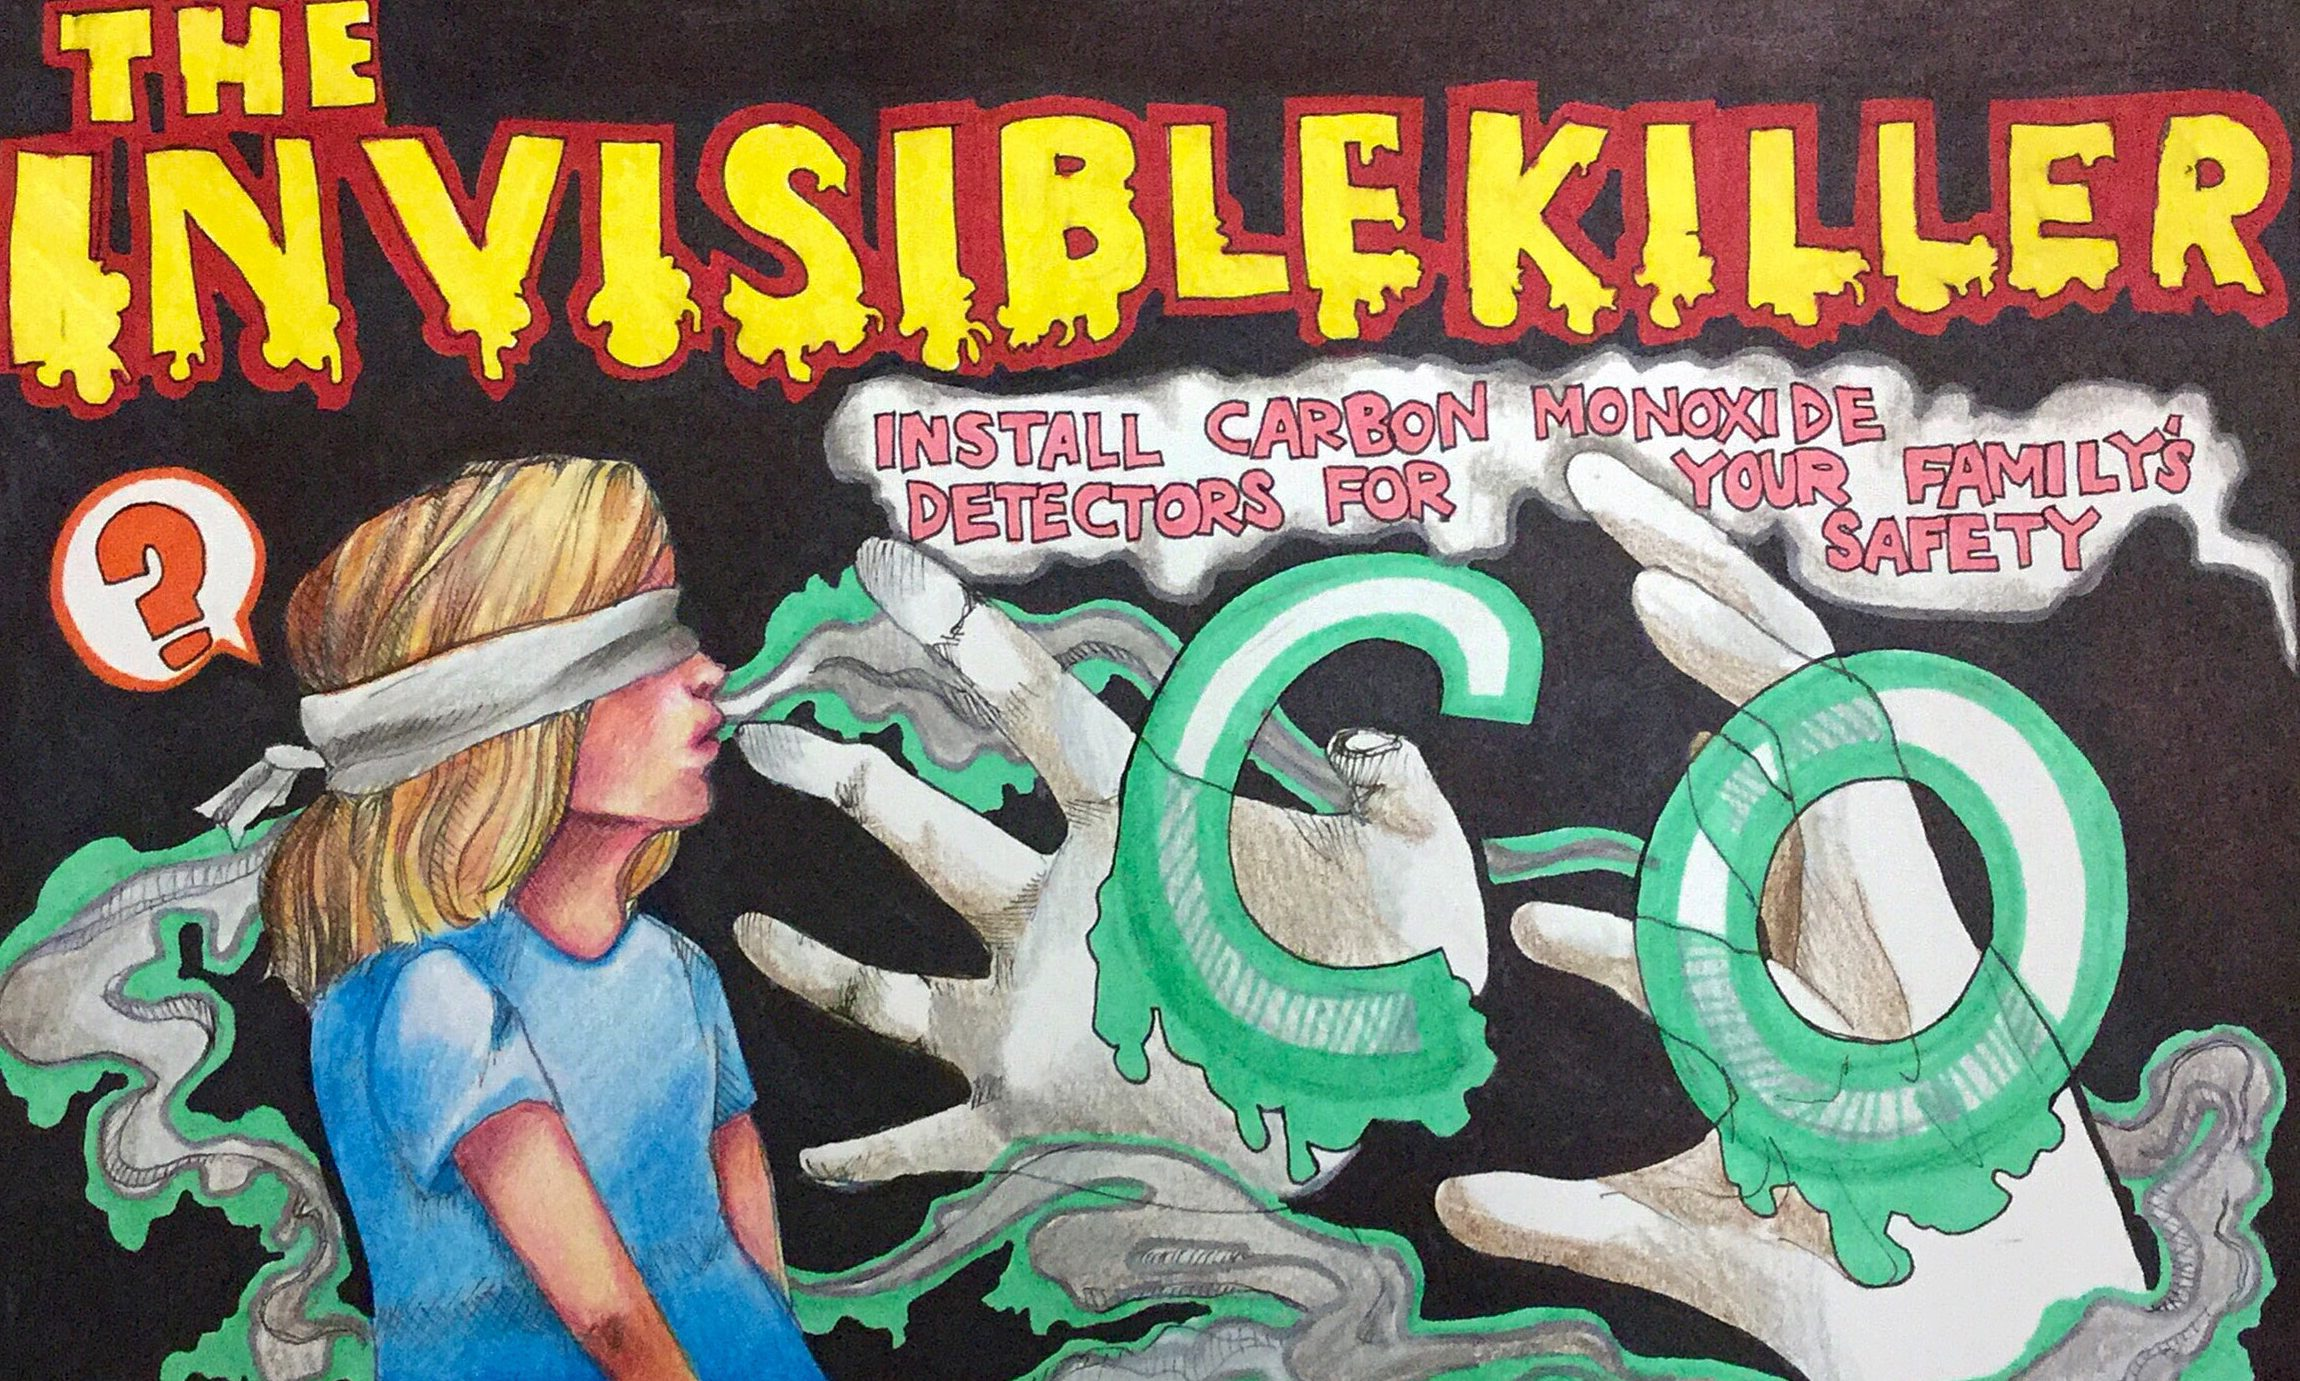 The winning poster for the CPSC Carbon Monoxide challenge features a blindfolded woman breathing in carbon monoxide, depicted as the invisible killer.